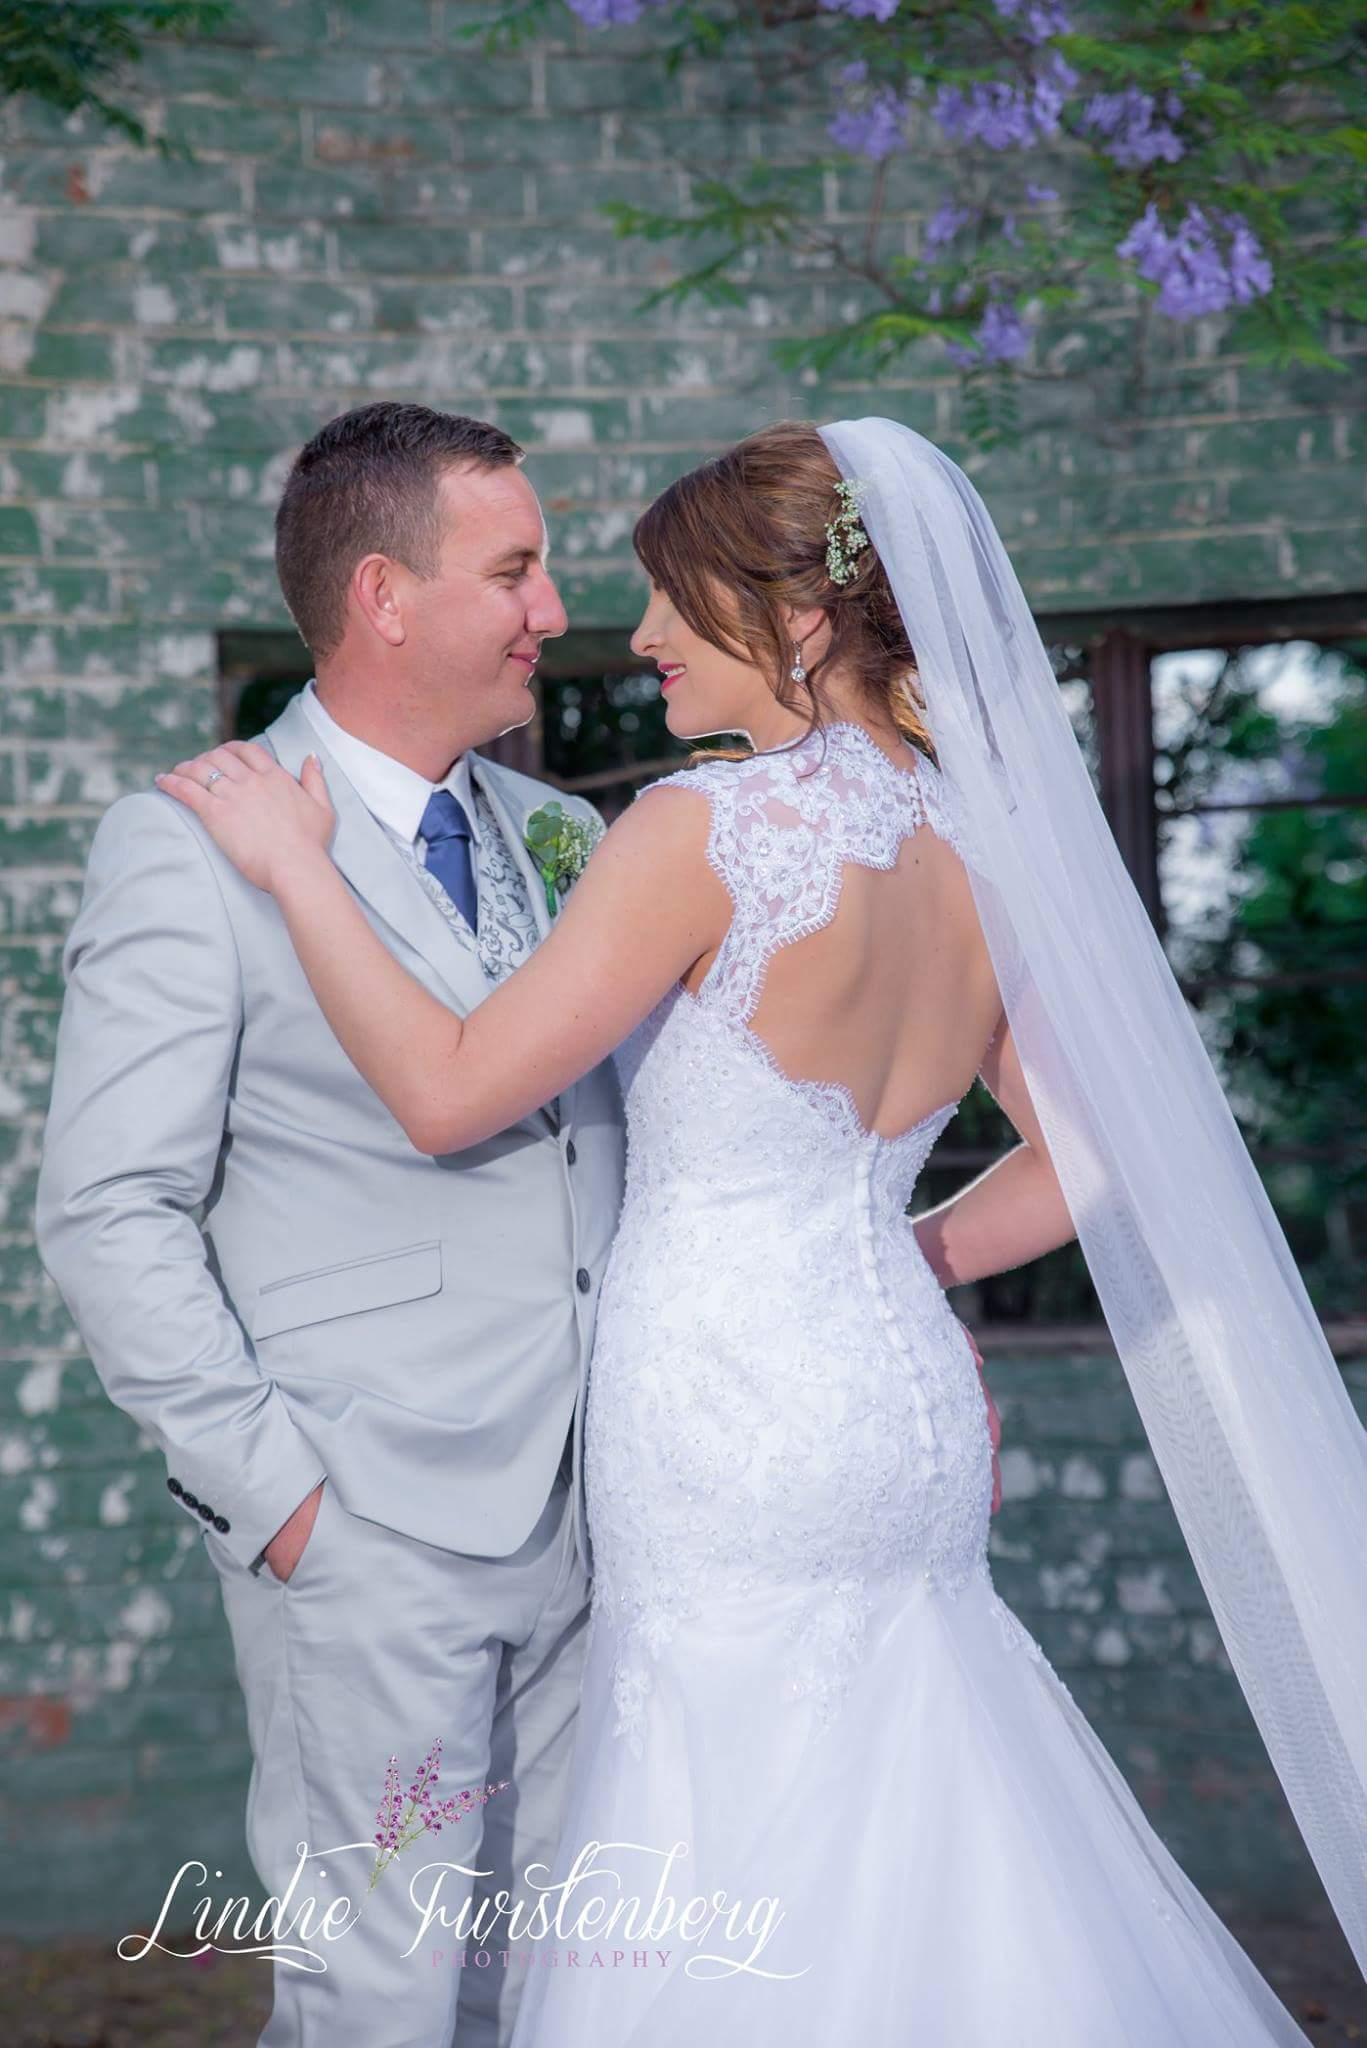 Wedding Gowns & Evening Wear Alterations as well as specialist Dry-Cleaning!